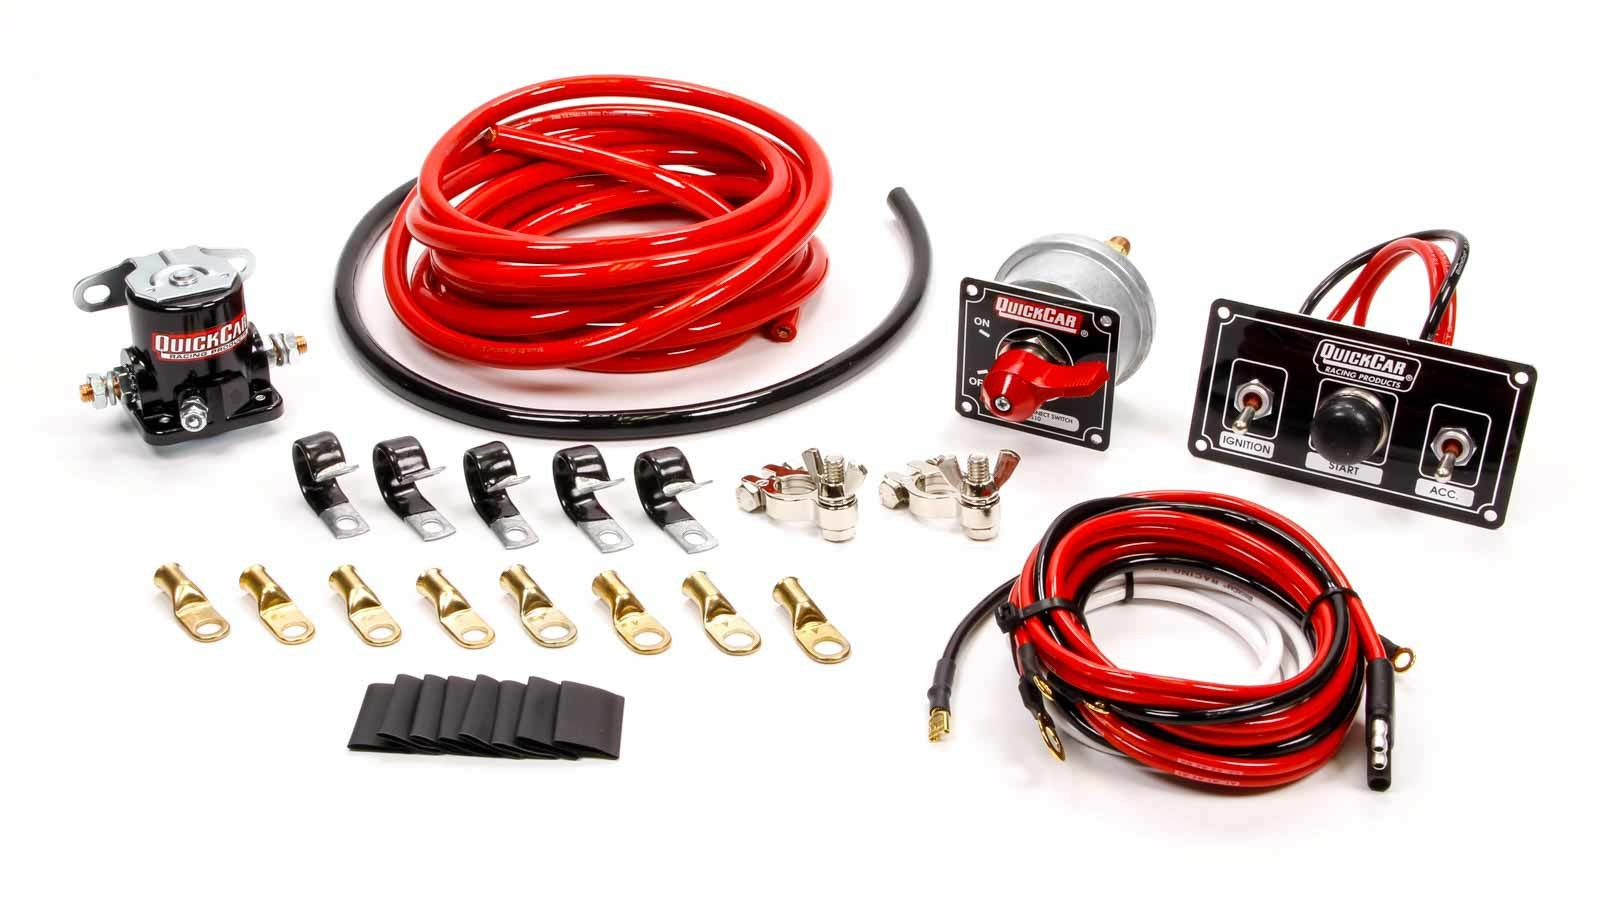 QuickCar 50-832 Wiring Kit, Ignition / Battery, Premium, Battery Cable / Battery Disconnect / Solenoid / Switch Panel / Terminals, 4 Gauge, Kit